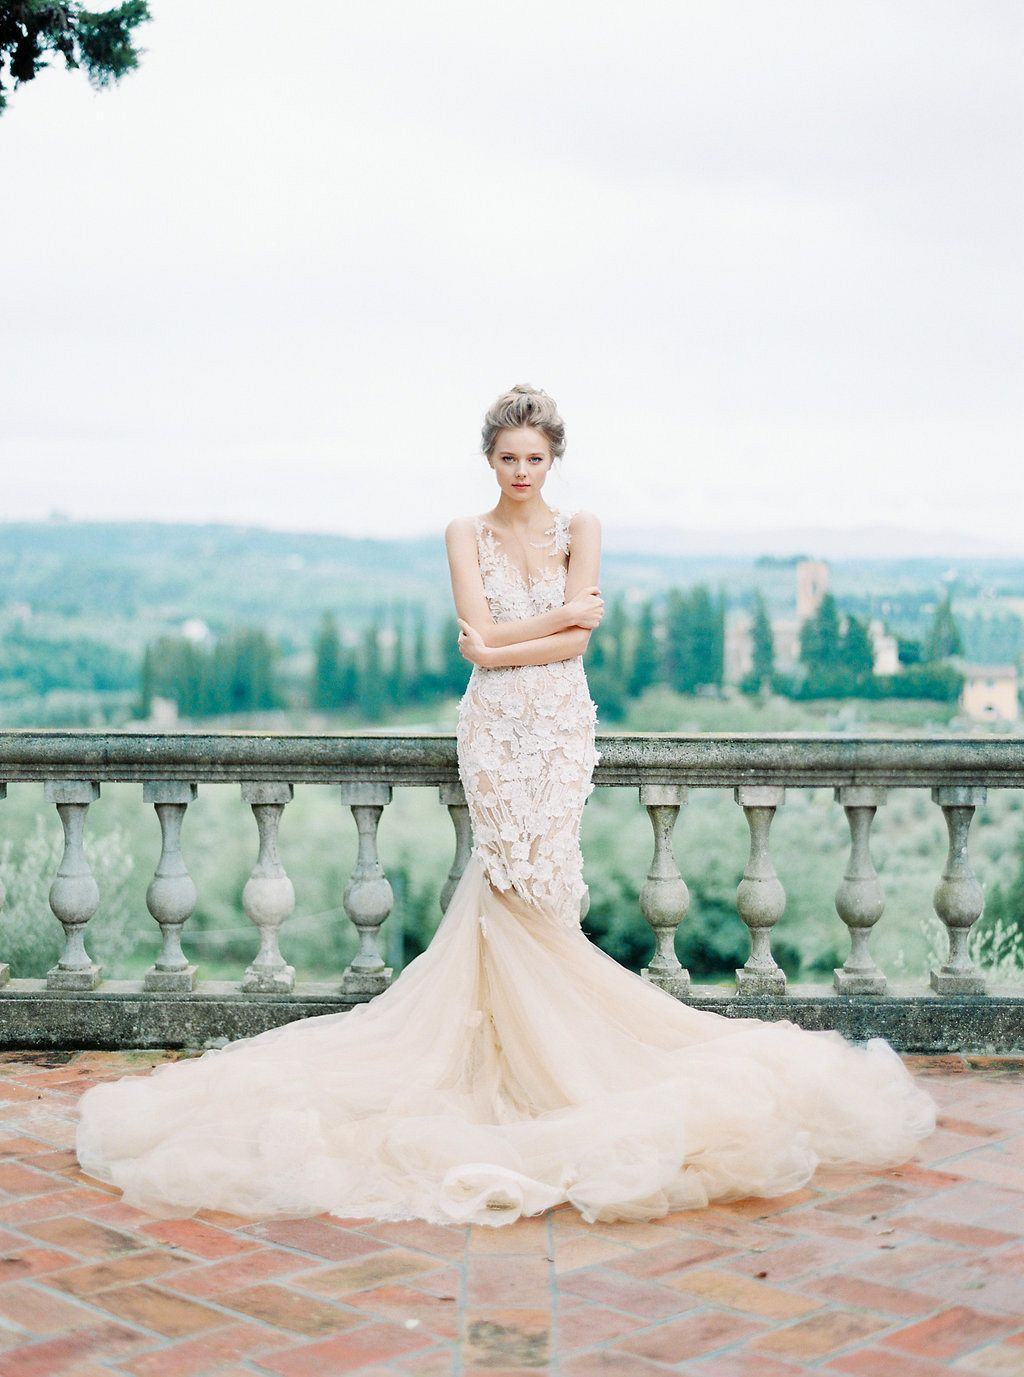 Italian Vogue Editorial in an incredible Nude, Lace Gown